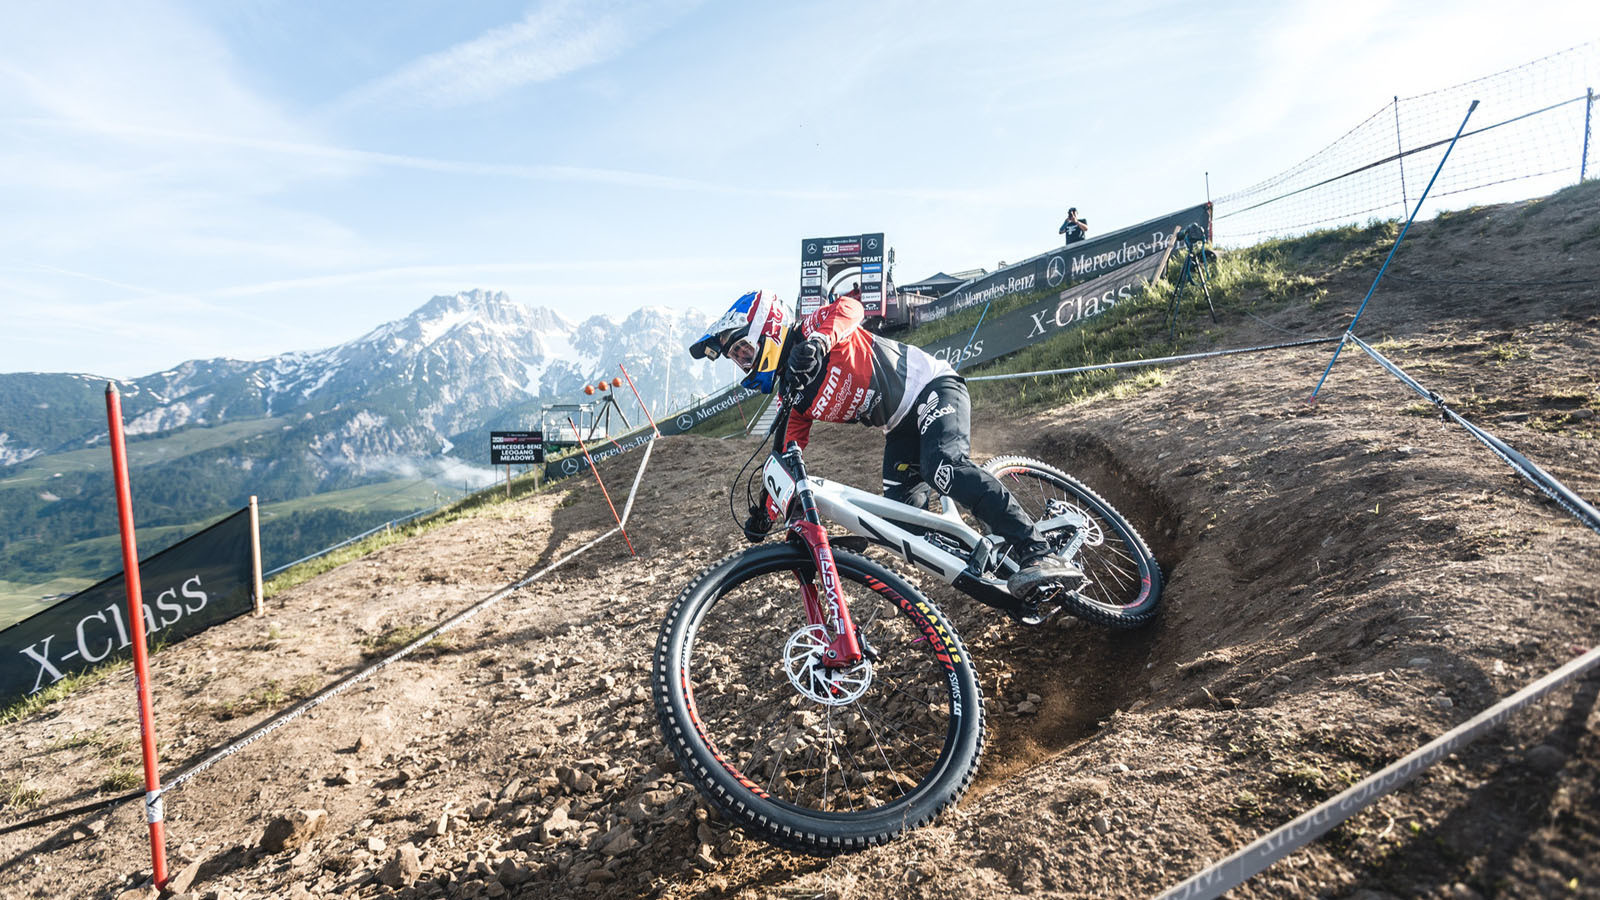 Saalfelden Leogang Is Gearing up for the UCI 2020 Mountain Bike World Championships